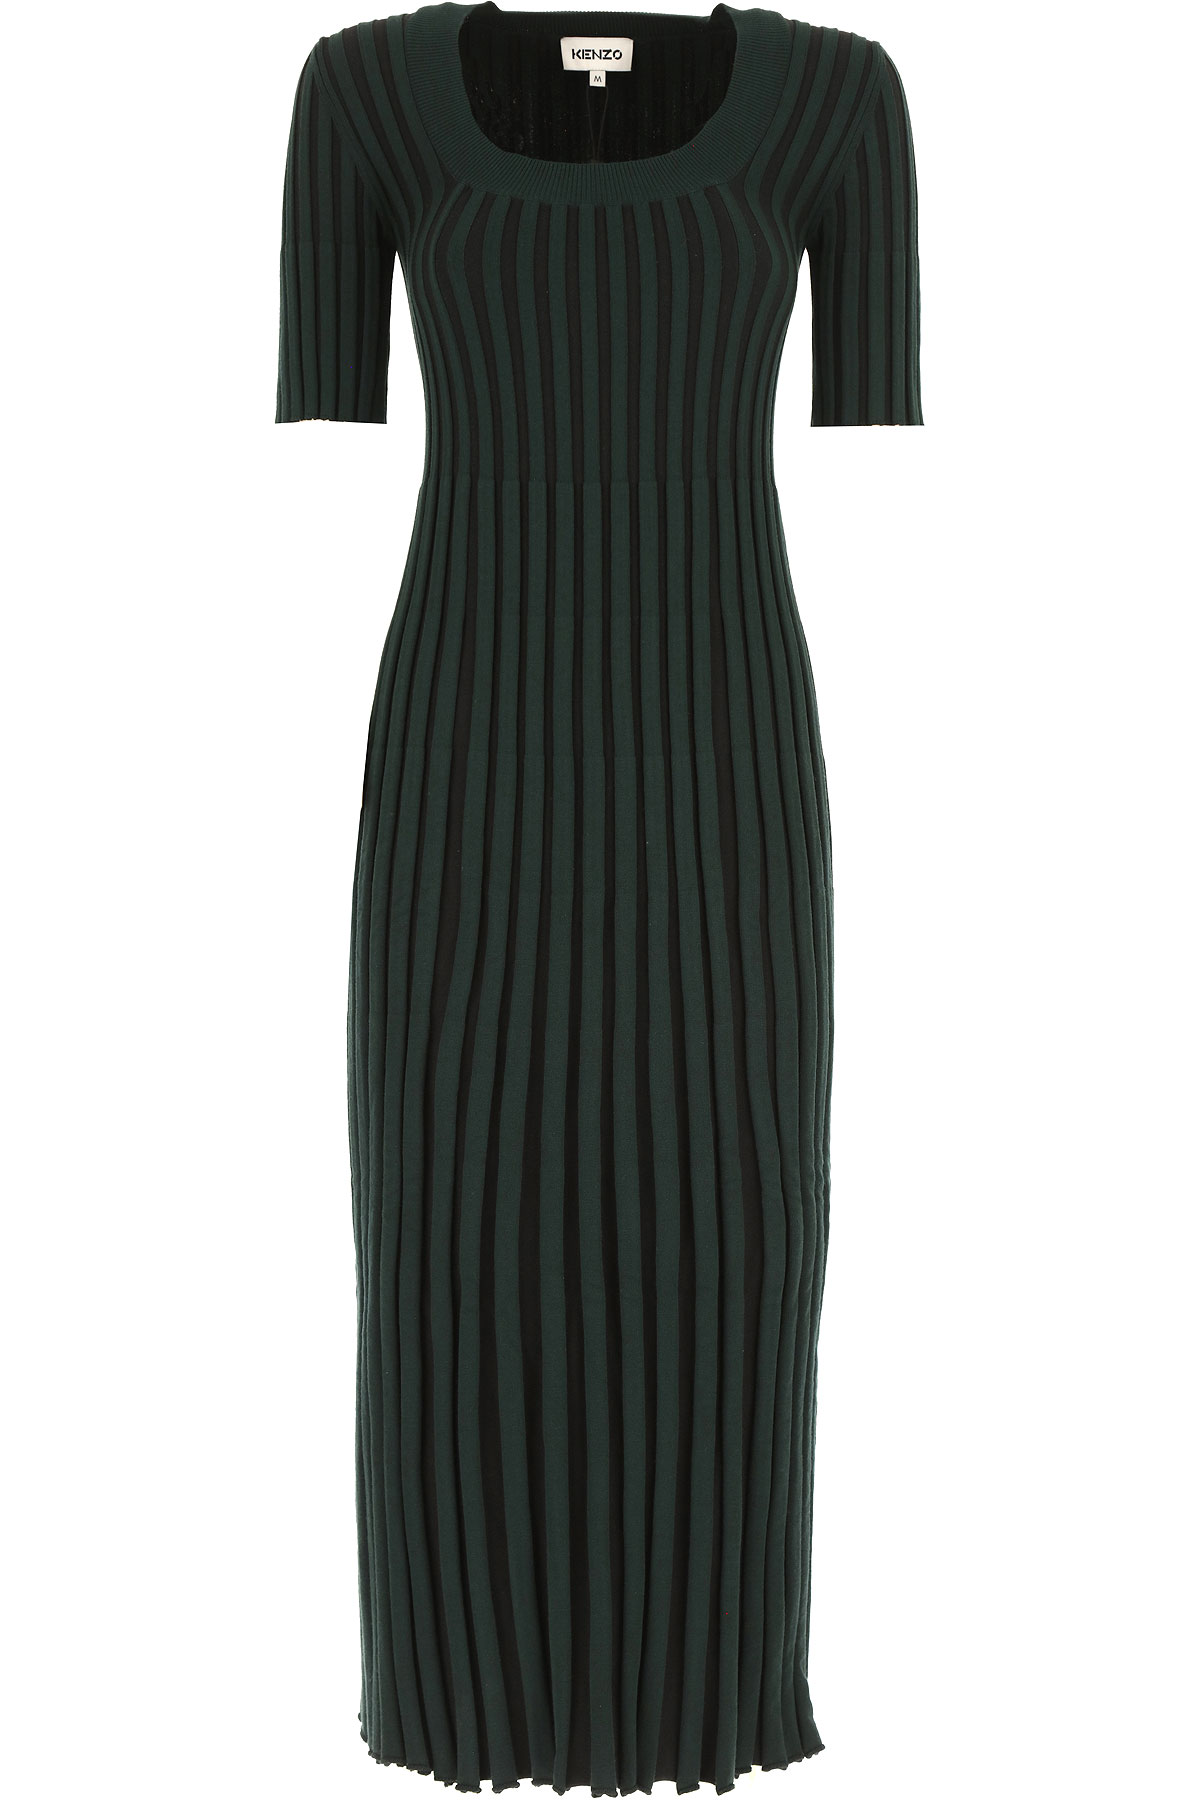 Kenzo Dress for Women, Evening Cocktail Party On Sale, Dark Green, viscosa, 2019, 6 8